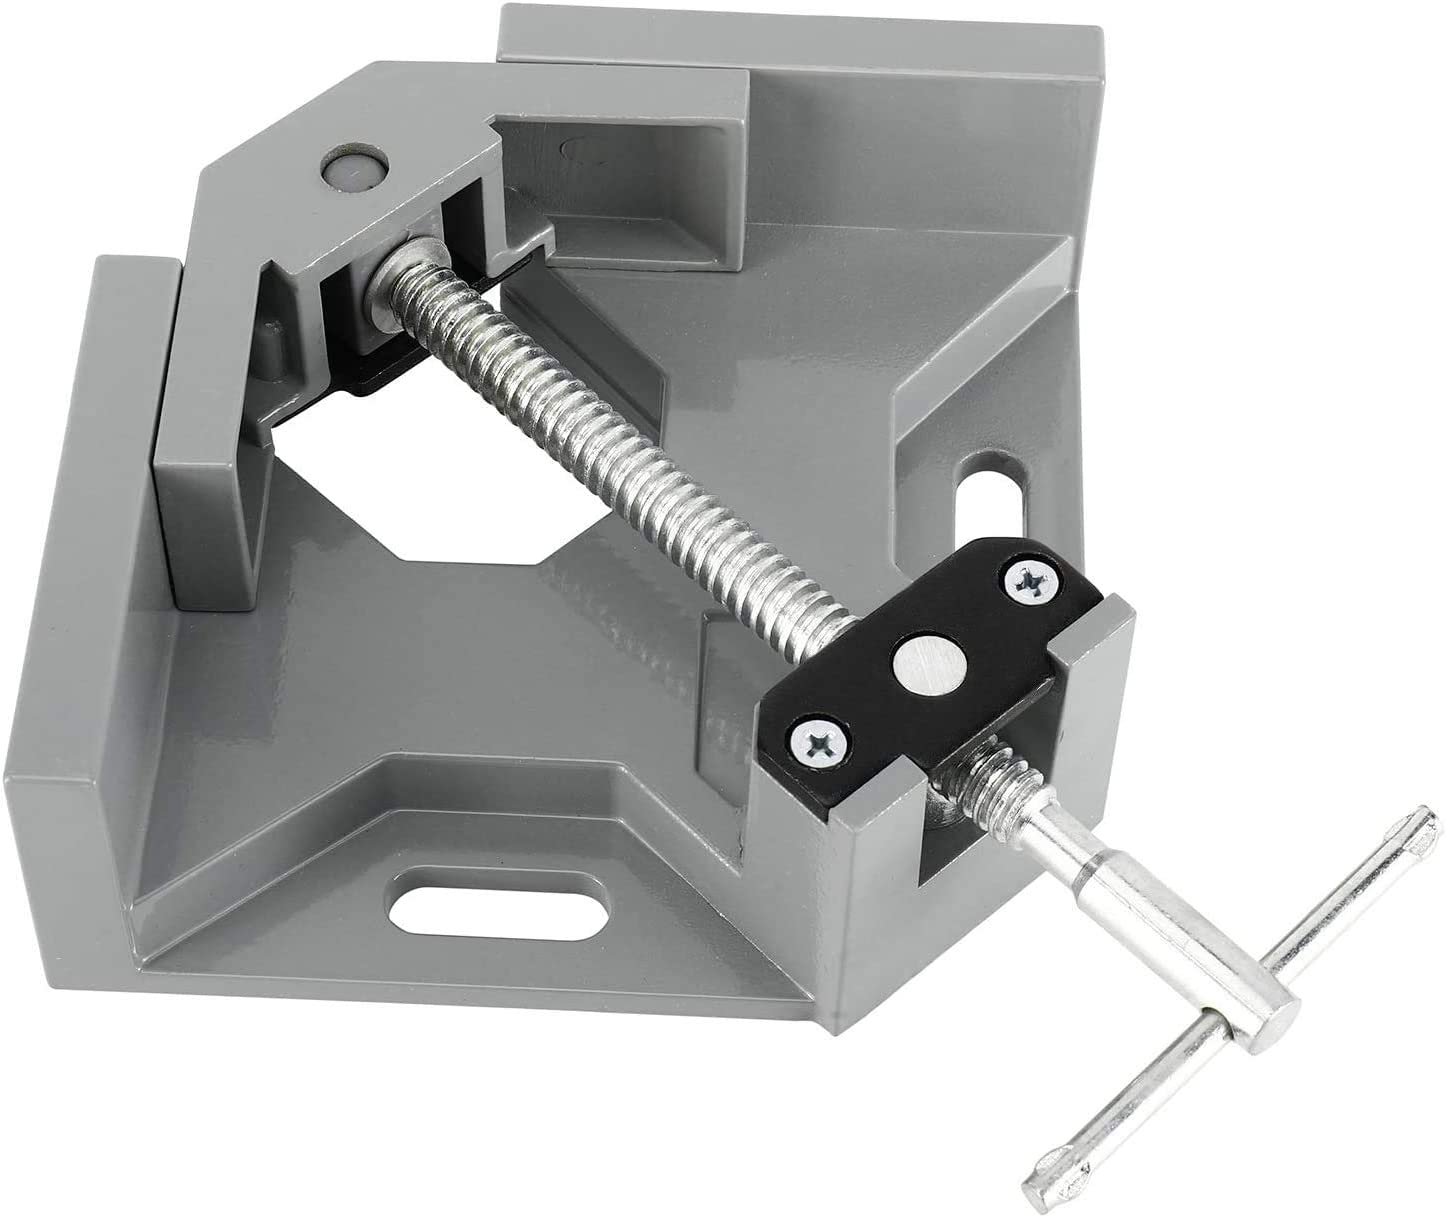 Homtone Right Angle Corner Clamp T-Shaped Handle 90 Degree Clamp Aluminum Alloy Angle Right Clamp with Adjustable Swing Jaw for Woodworking Photo Frame Vise Holder Gray